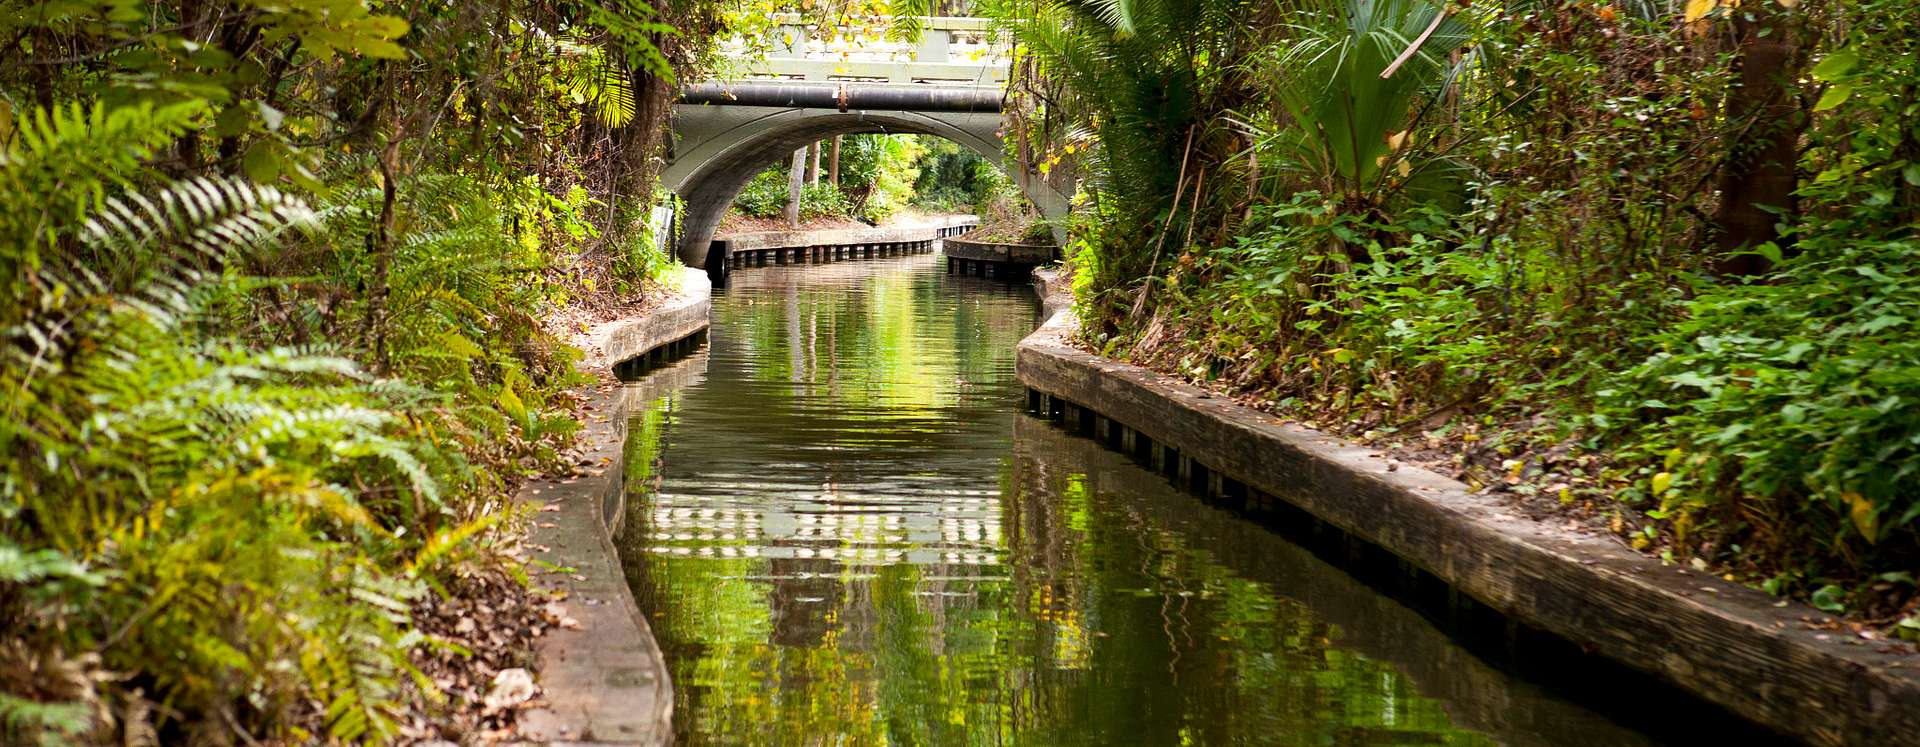 Canal along the Winter Park Scenic Boat Tour